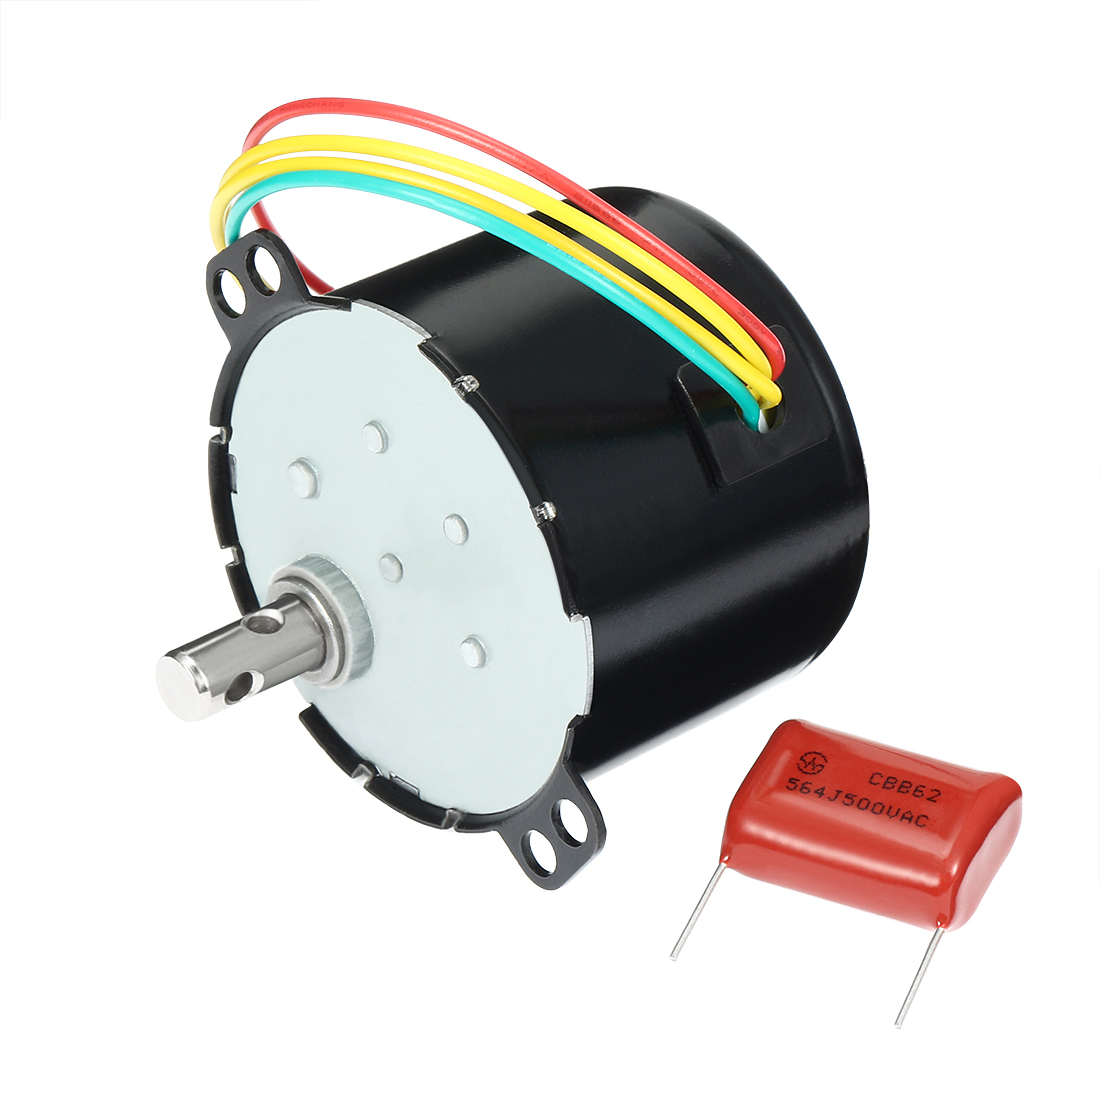 AC 110V 50Hz 6W 100RPM Synchronous Motor Output Speed Reduction Geared Box